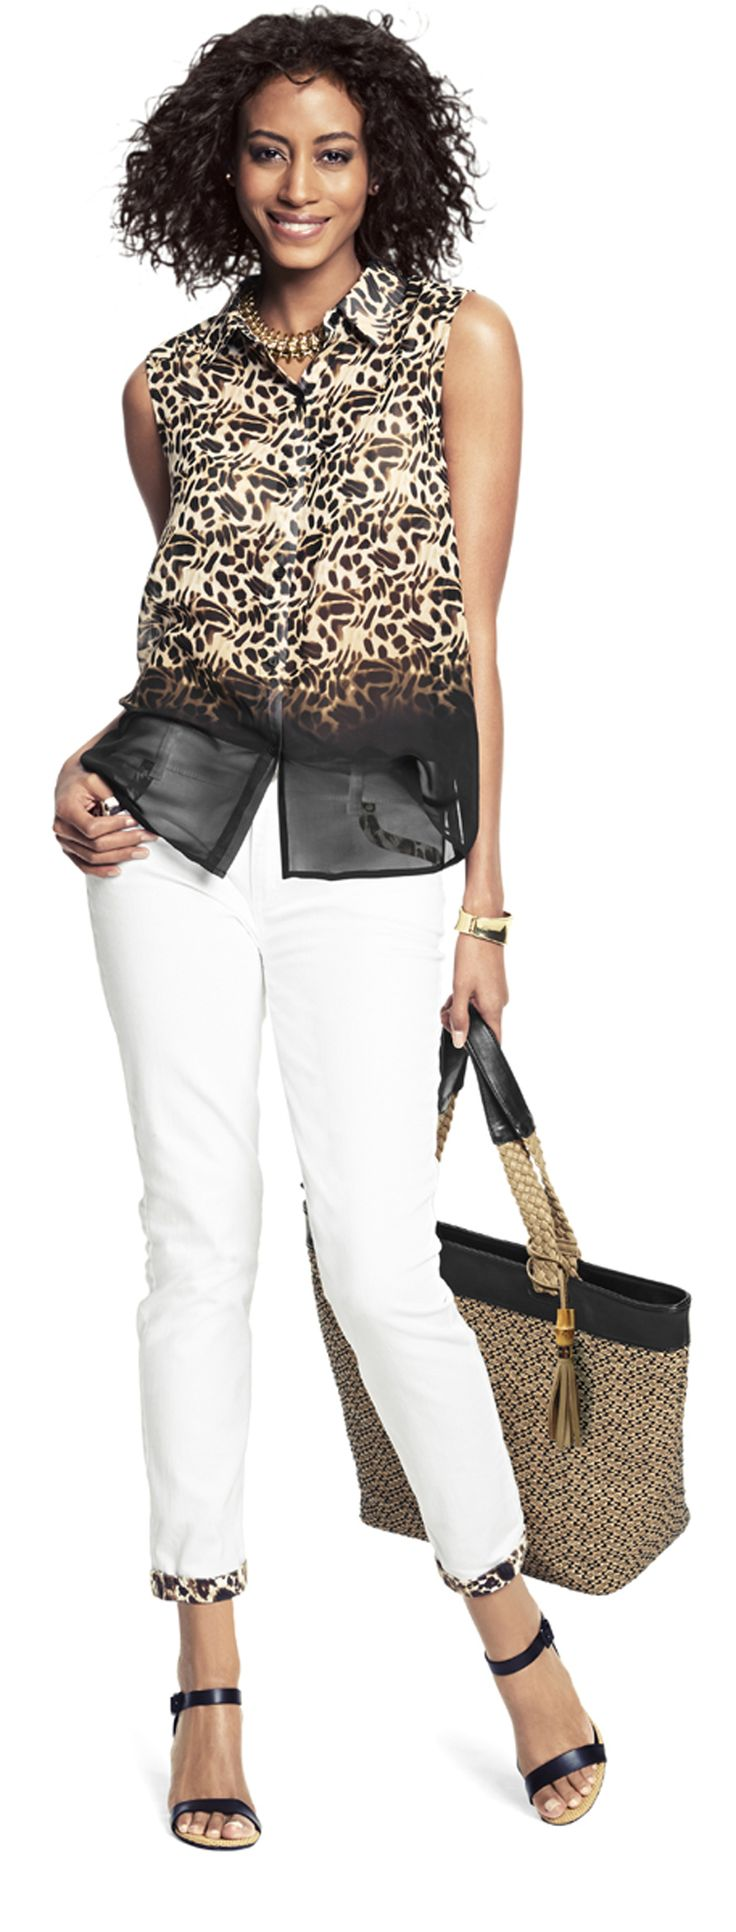 Chico's Animal Illusion Allen Shirt paired with the Platinum Pieced Animal Print Skimmer